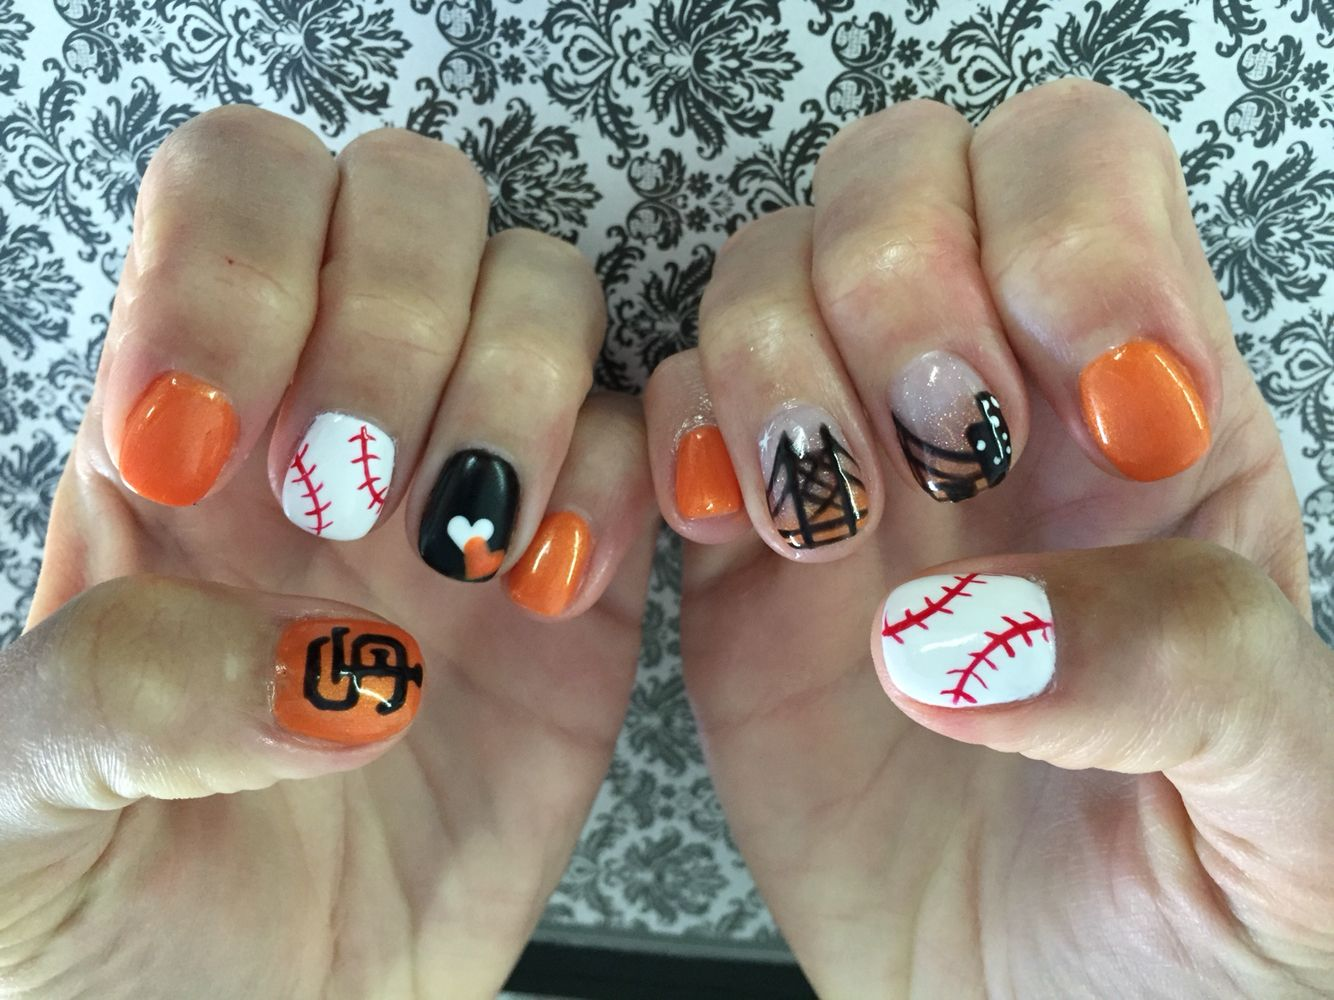 San Francisco Giants Baseball Nails by Vi at Tootsie Toes on Polk in ...